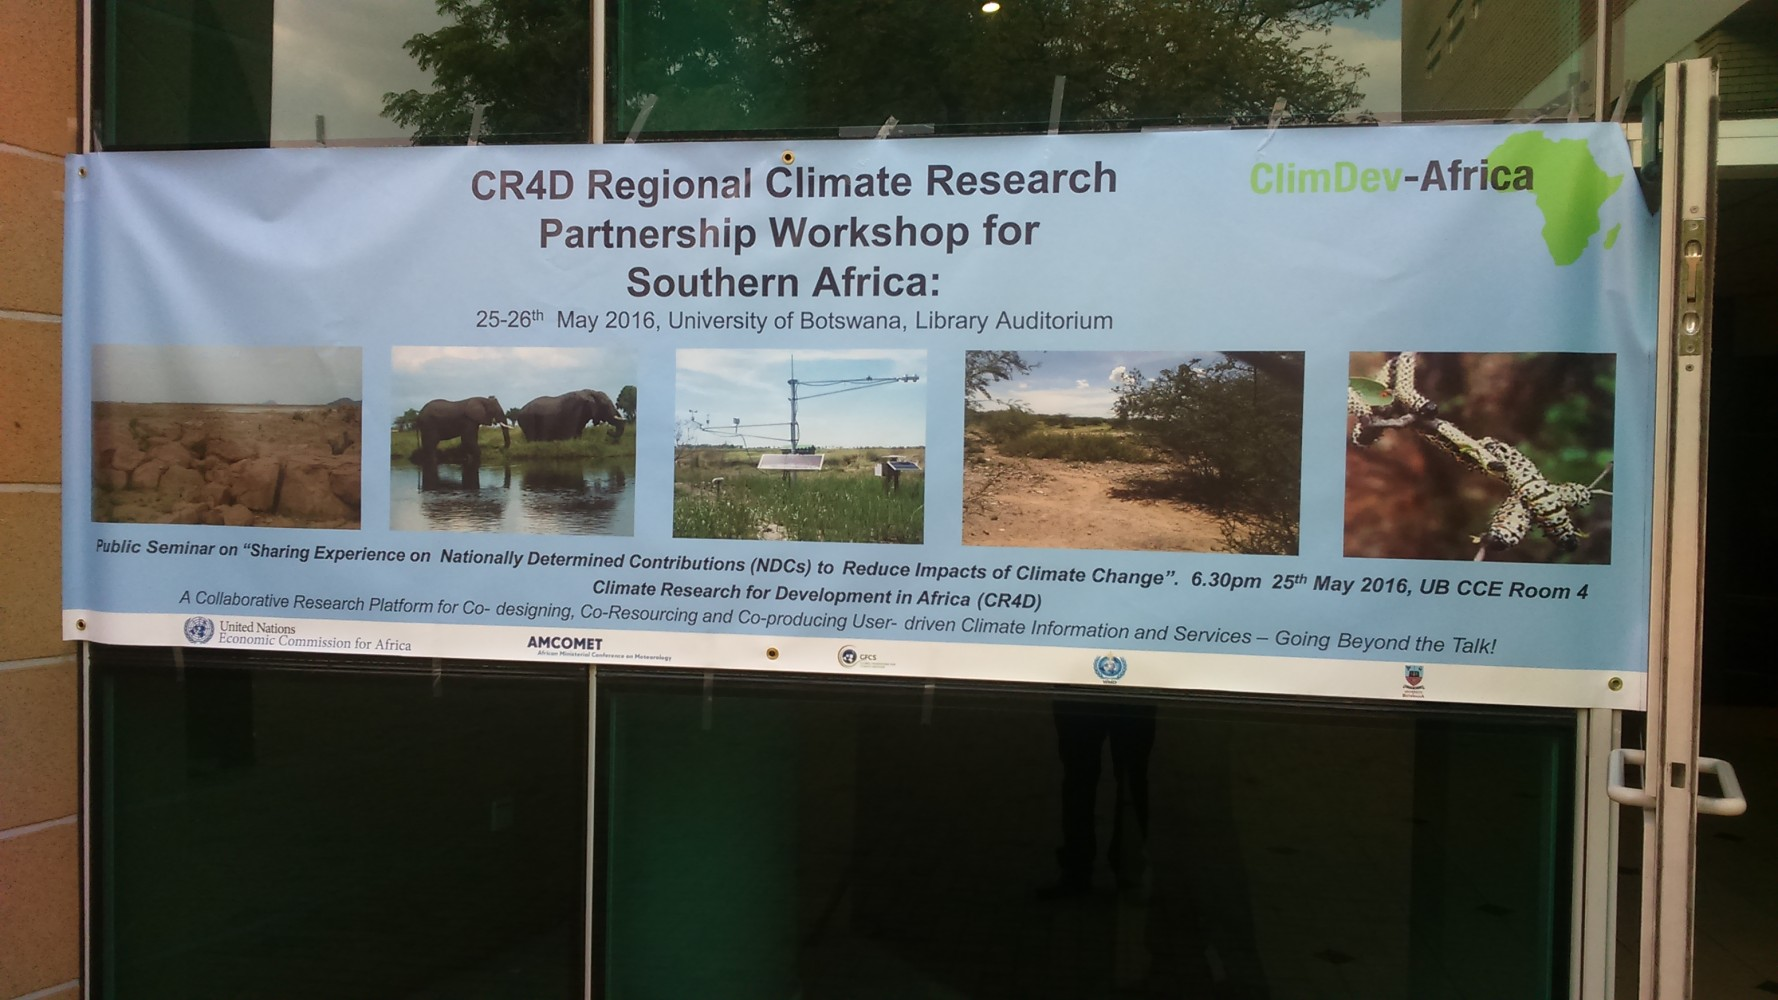 Progress Namibia - Southern Africa Regional Workshop on Climate Research Partnership Concludes